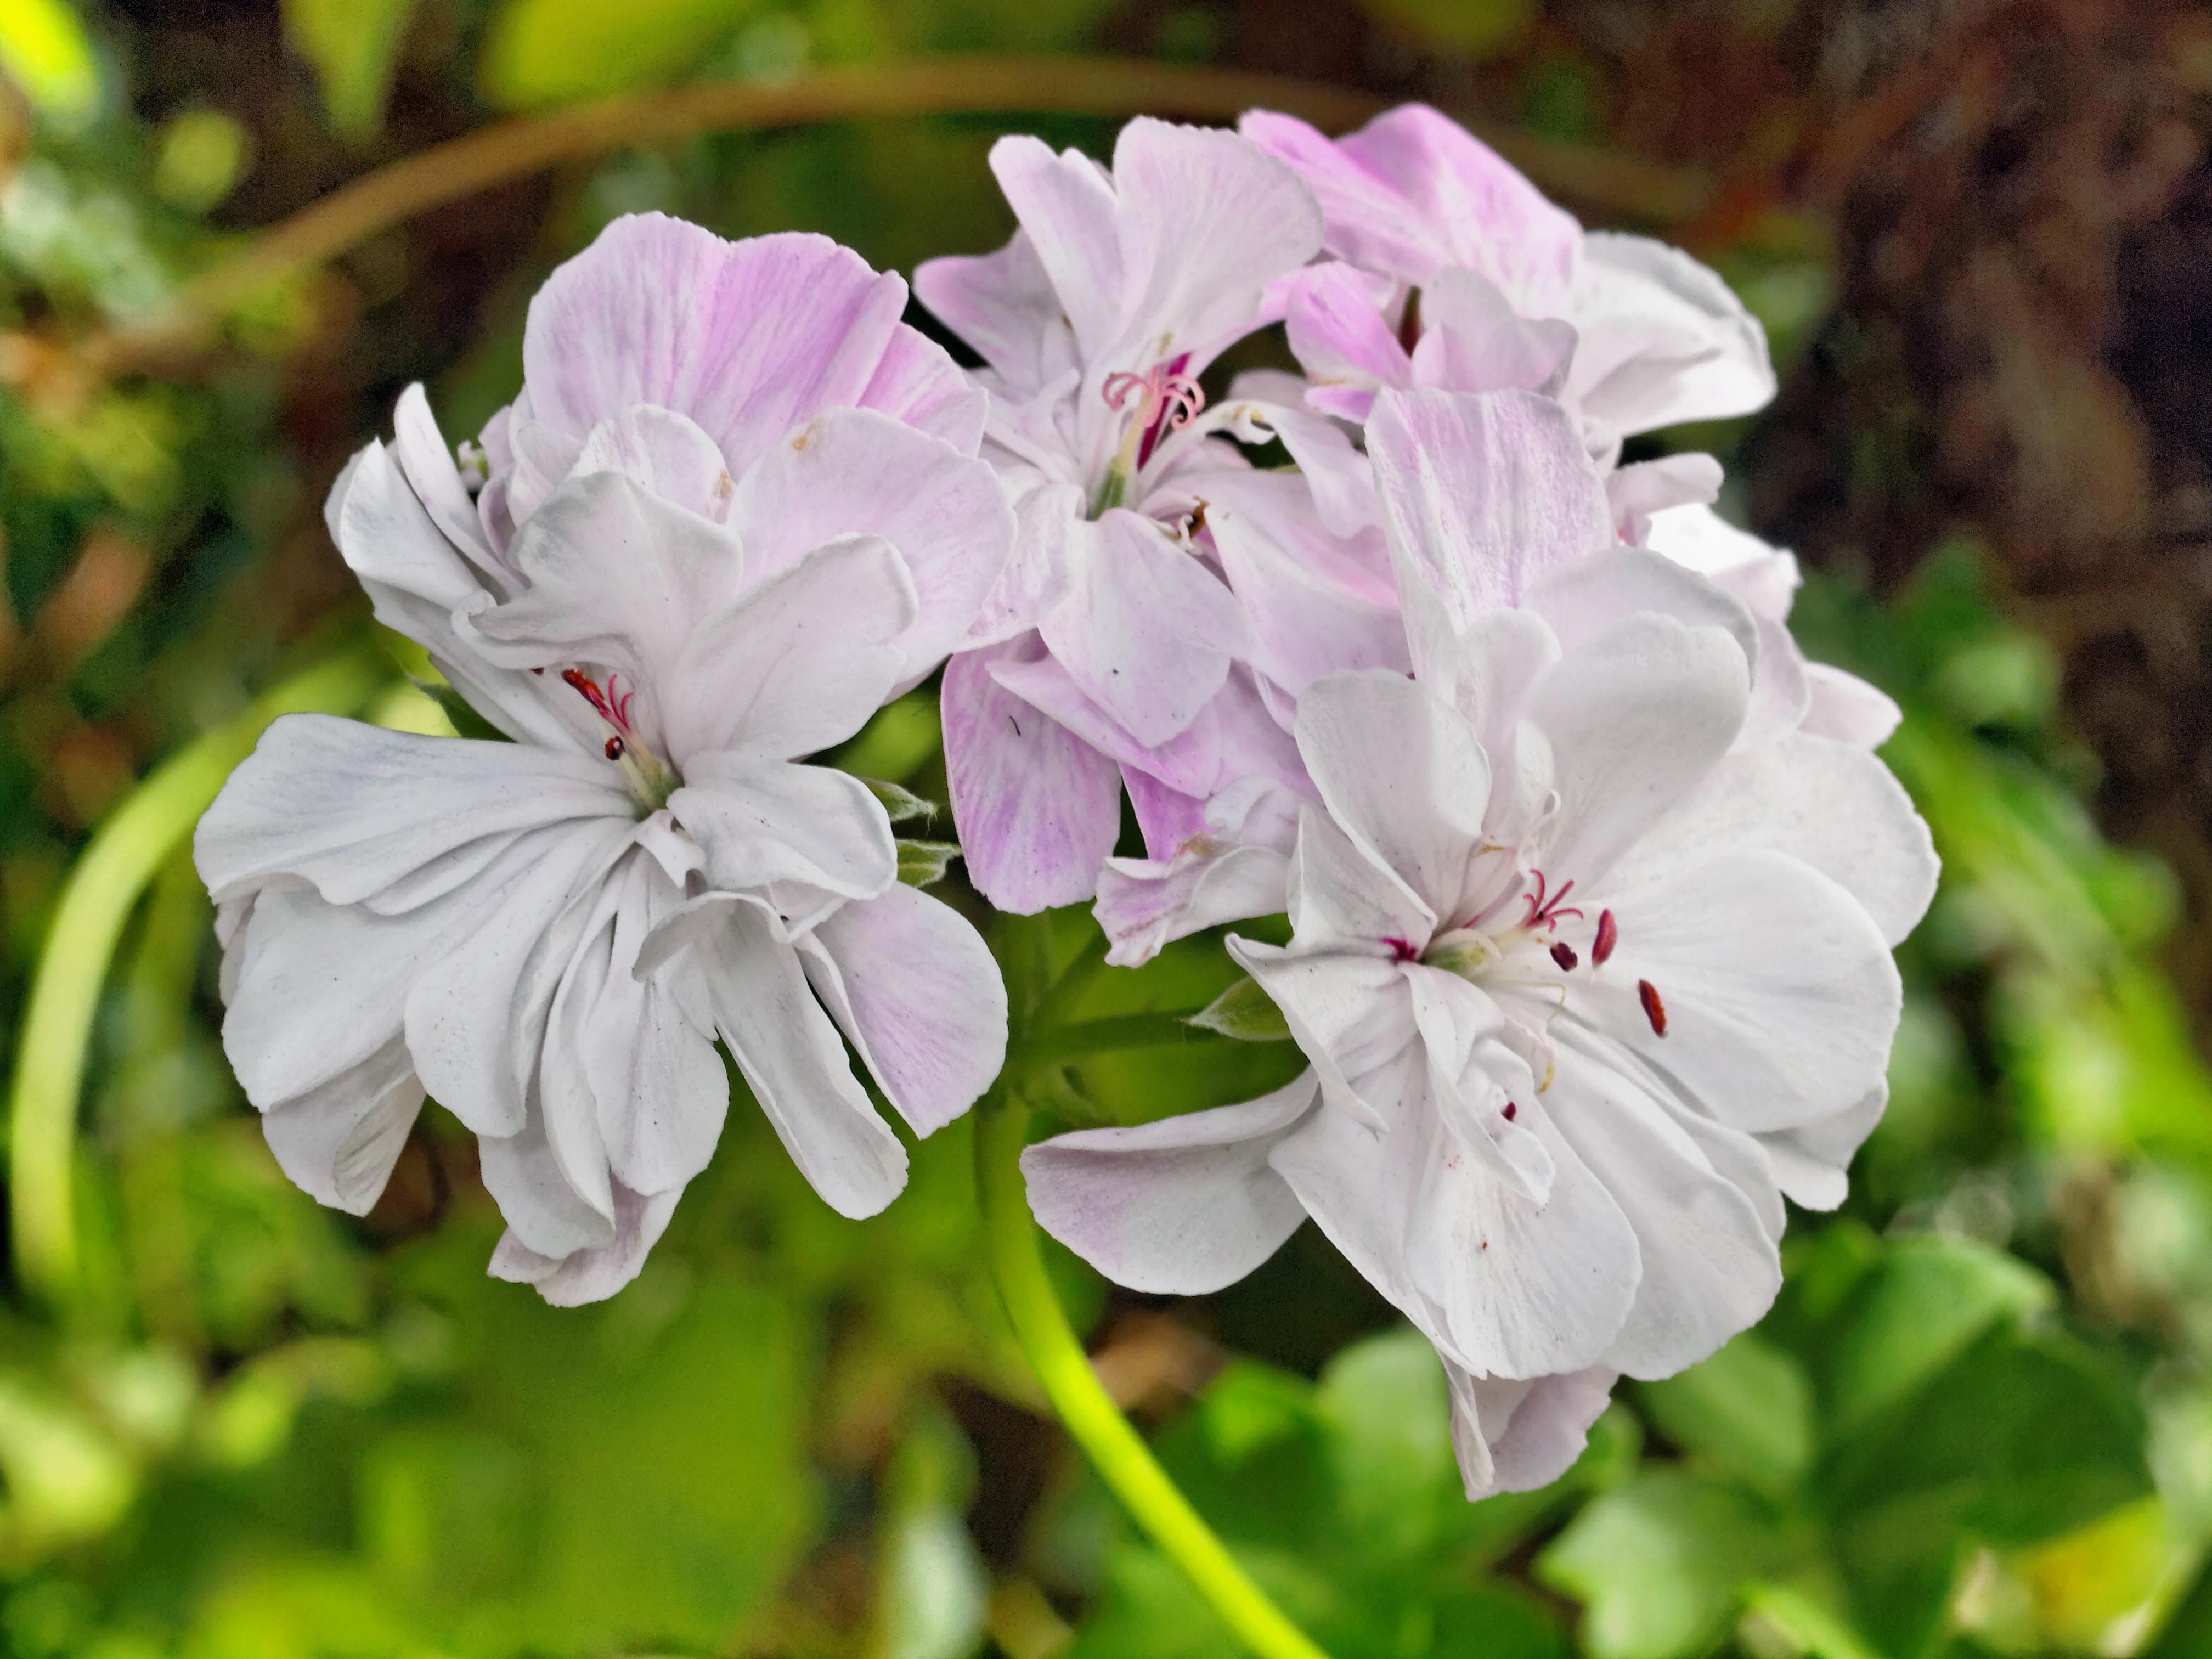 This should be Pelargonium-6.jpeg.  Is it missing?